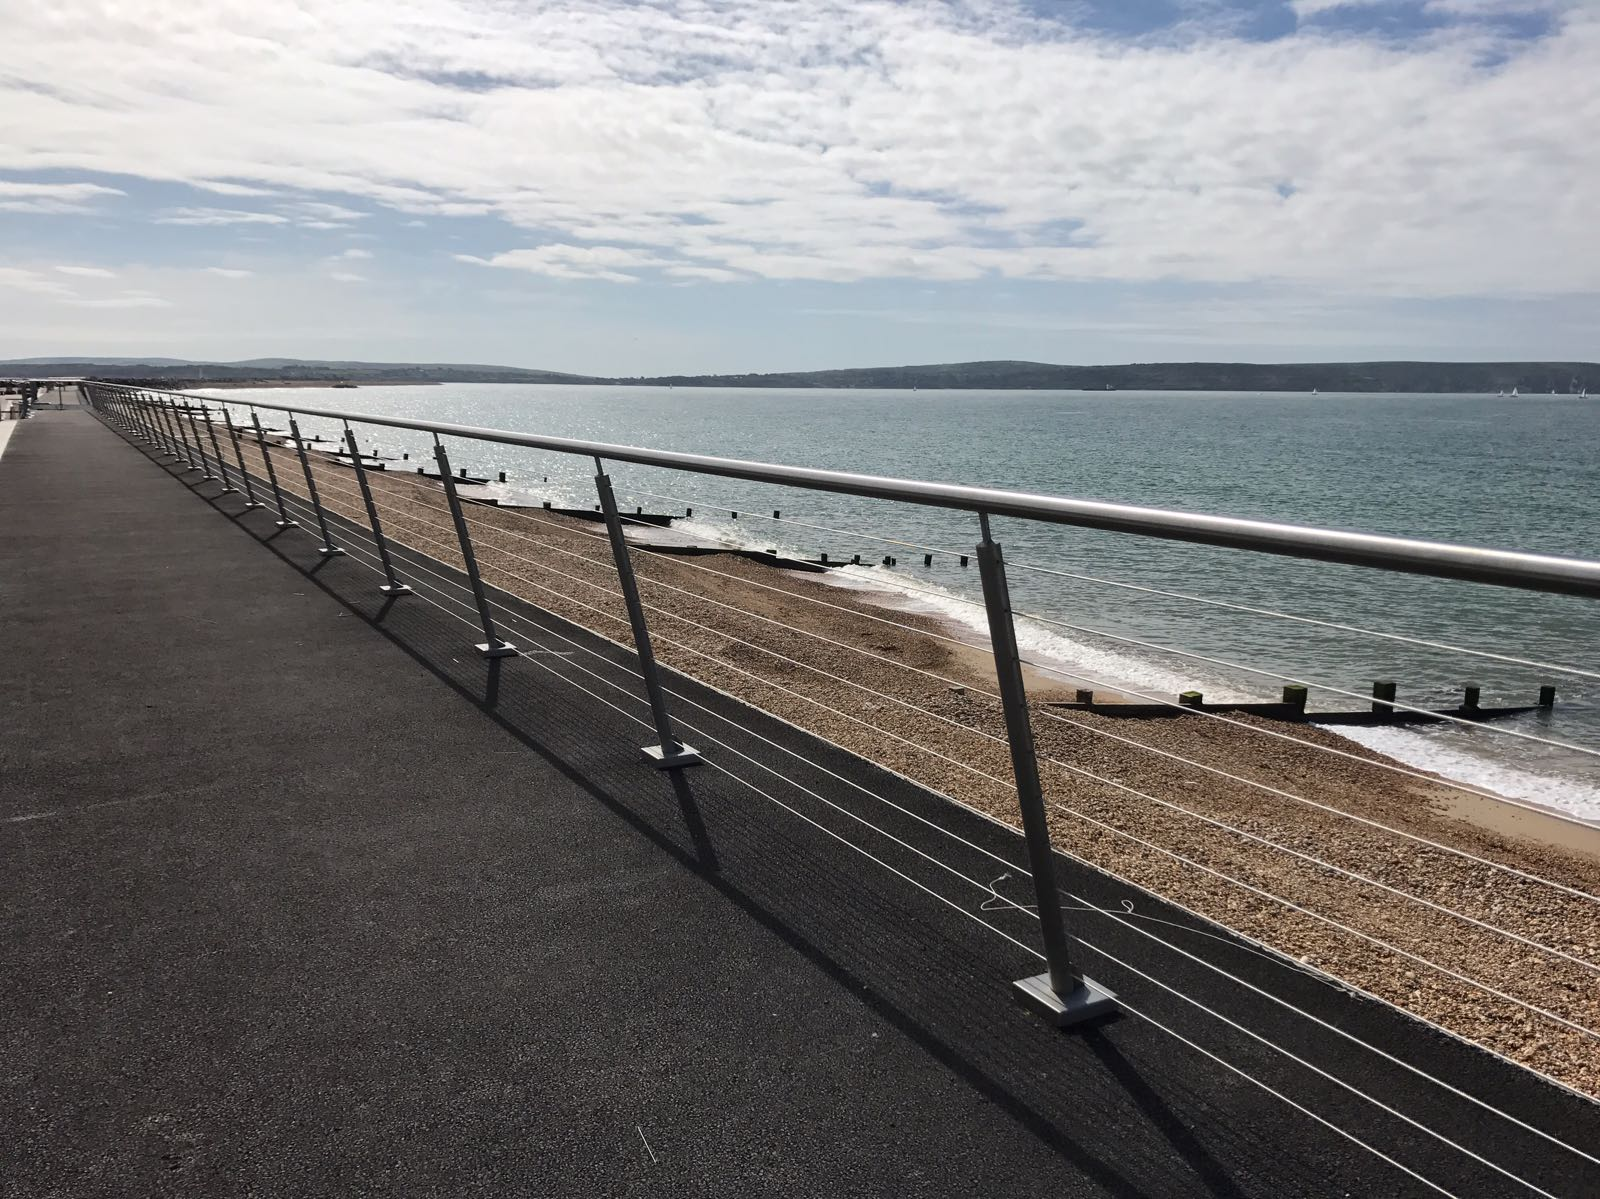 Stainless steel wire rope balustrade on seafront